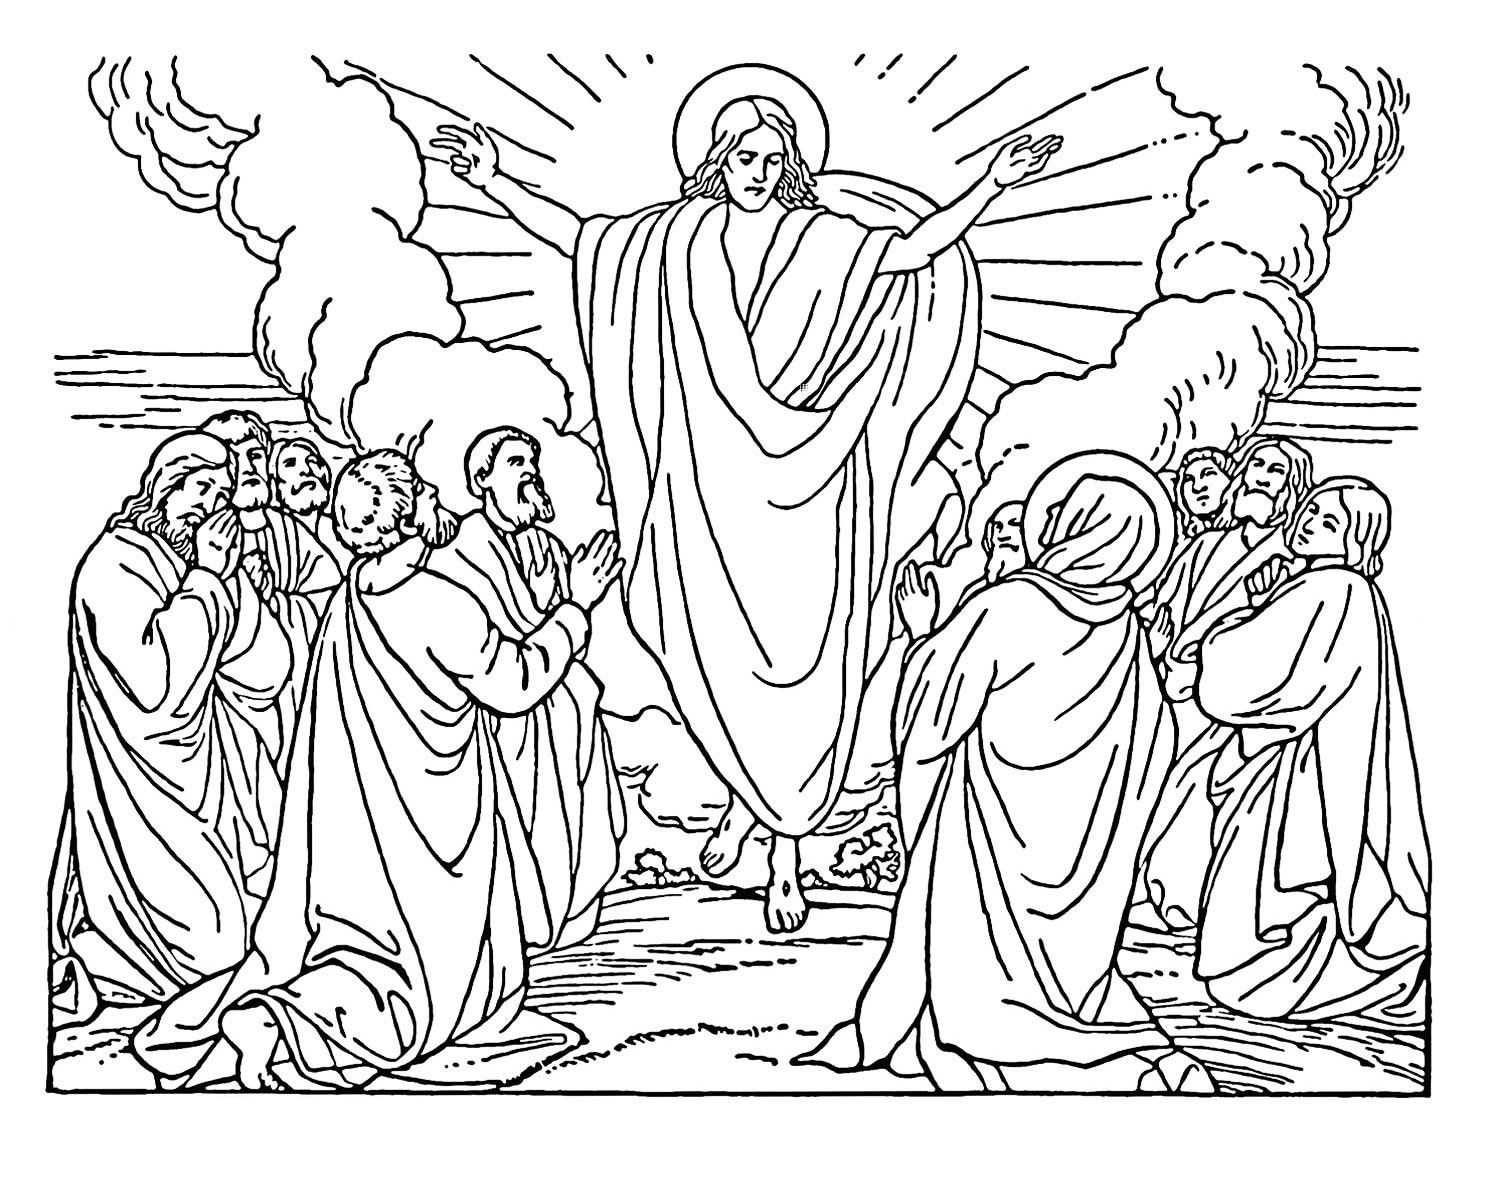 colouring pages bible printable bible coloring pages coloringmecom colouring pages bible